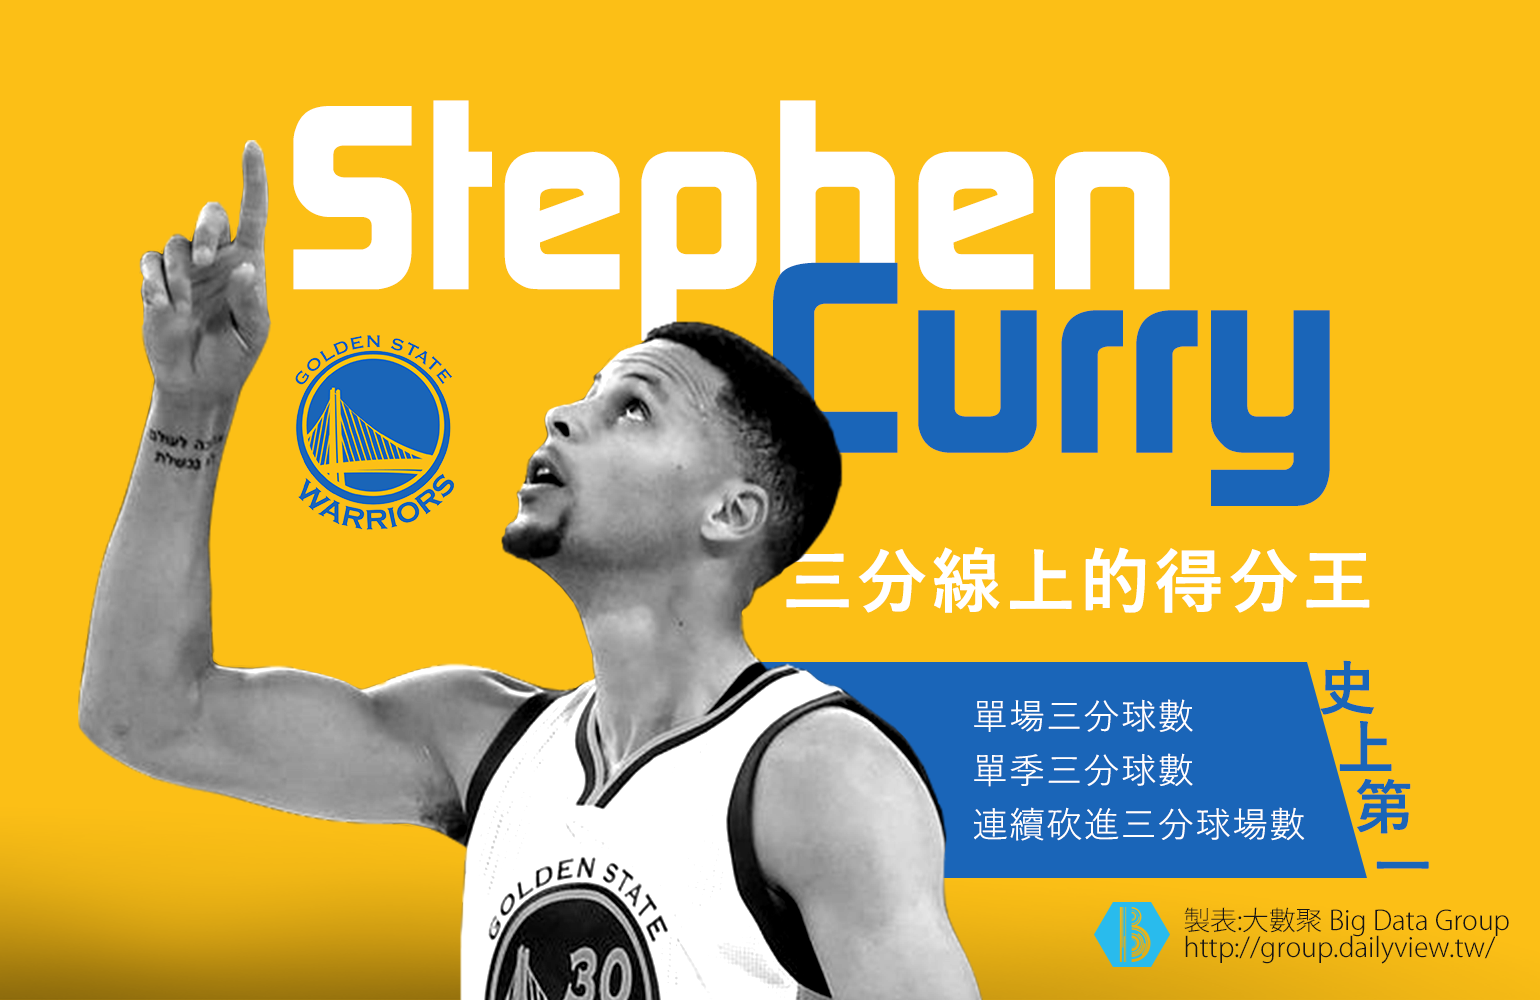 05_stephen_curry